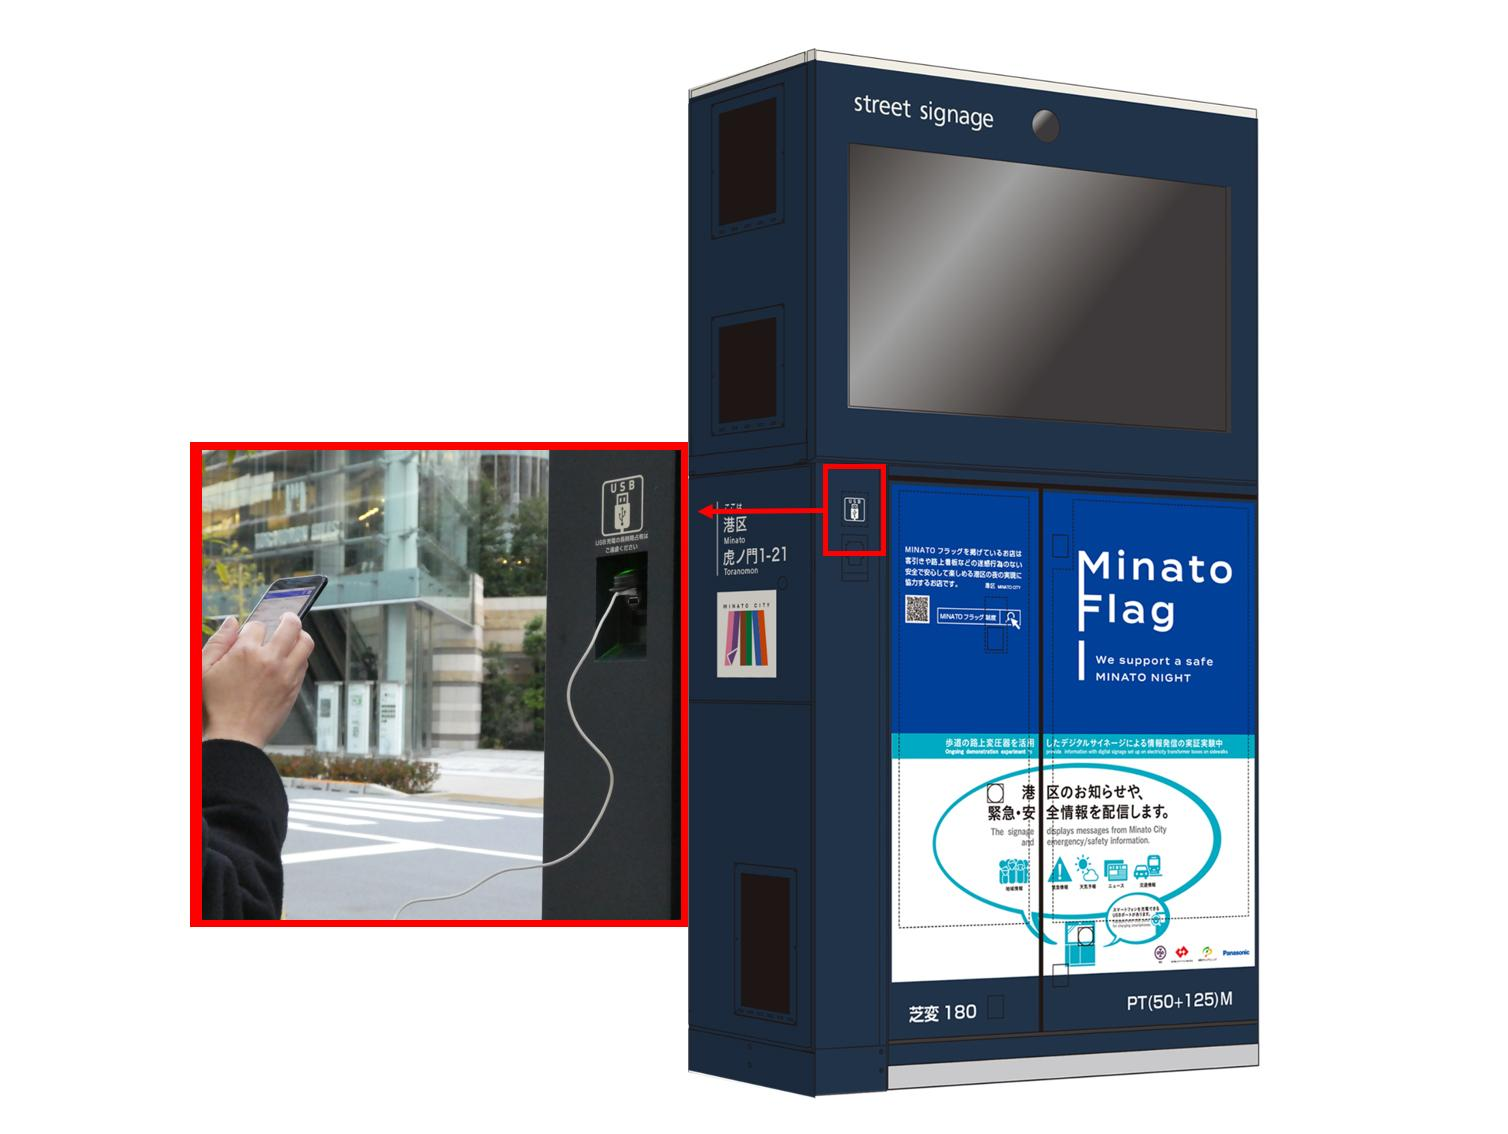 Image: Street Signage® used as a smart phone charging station